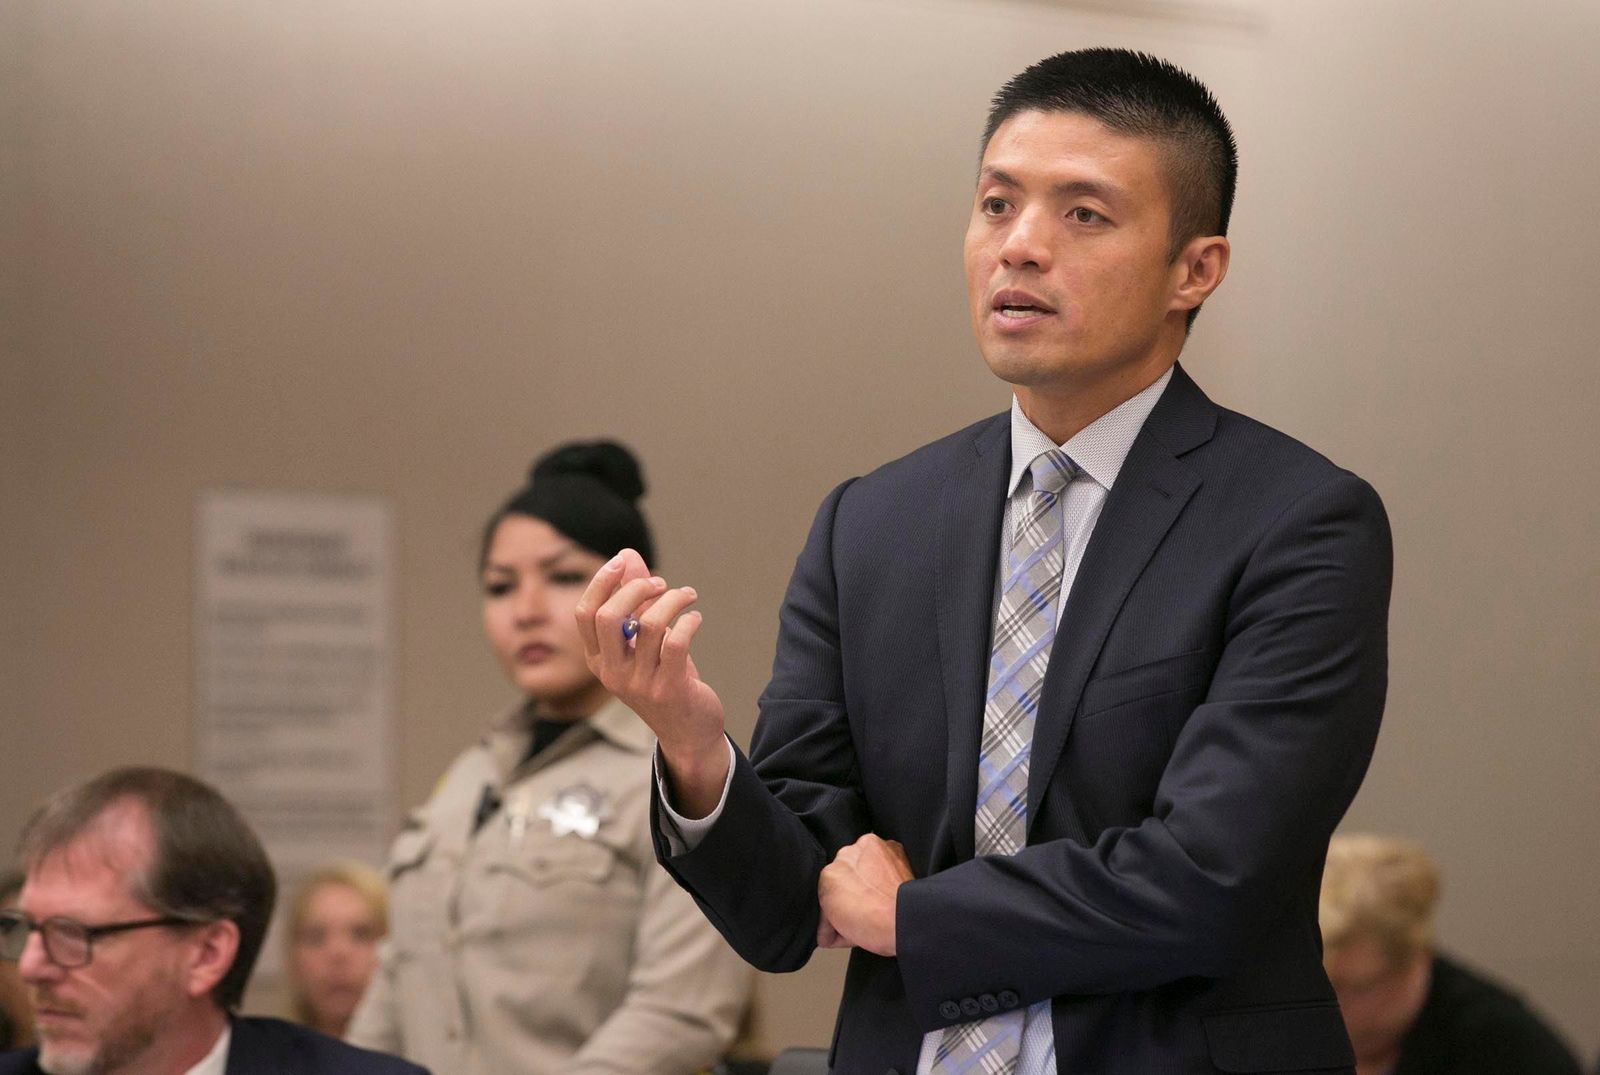 Deputy District Attorney Leonard Trinh questions witness Oscar Stewart during a preliminary hearing for John Earnest, Thursday, Sept. 19, 2019, in Superior Court in San Diego. Prosecutors say Earnest opened fire during a Passover service at the Chabad of Poway synagogue on April 27, killing one woman and injuring three people, including the rabbi. (John Gibbins/The San Diego Union-Tribune via AP, Pool)